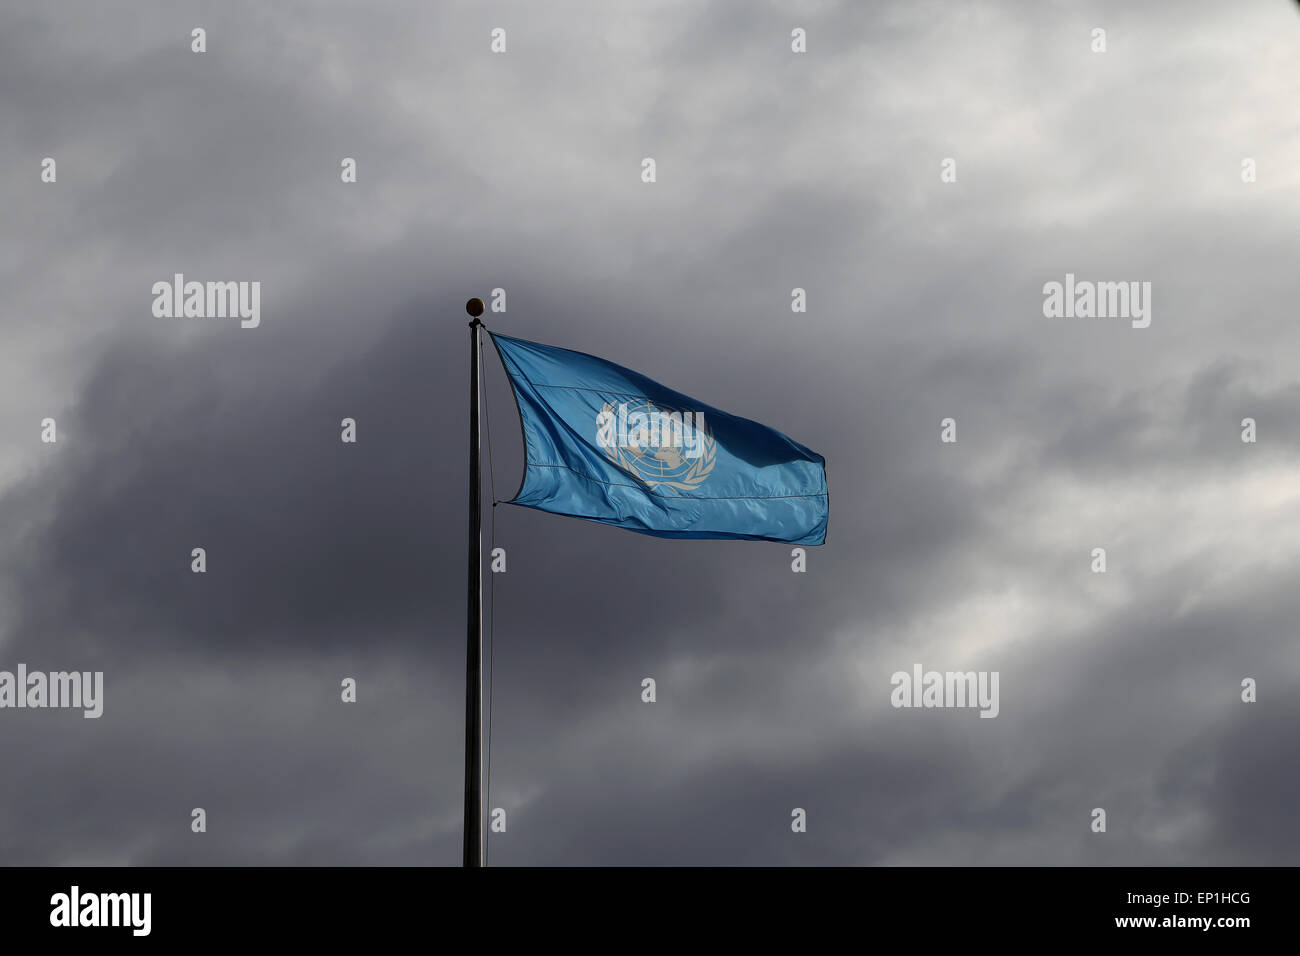 The flag flying at Headquarters of the United Nations. New York City. USA. - Stock Image